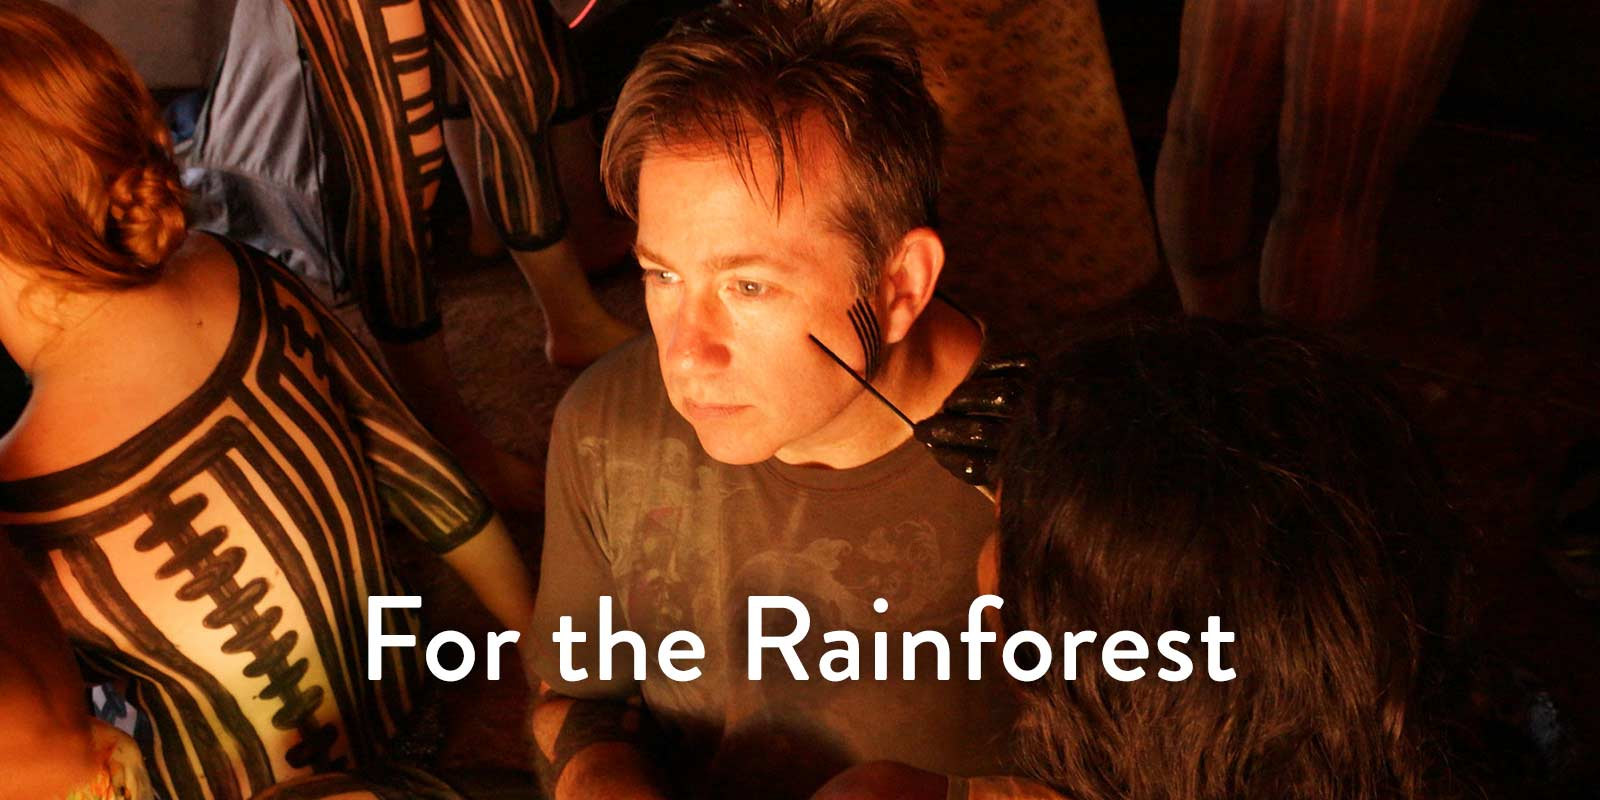 For the Rainforest